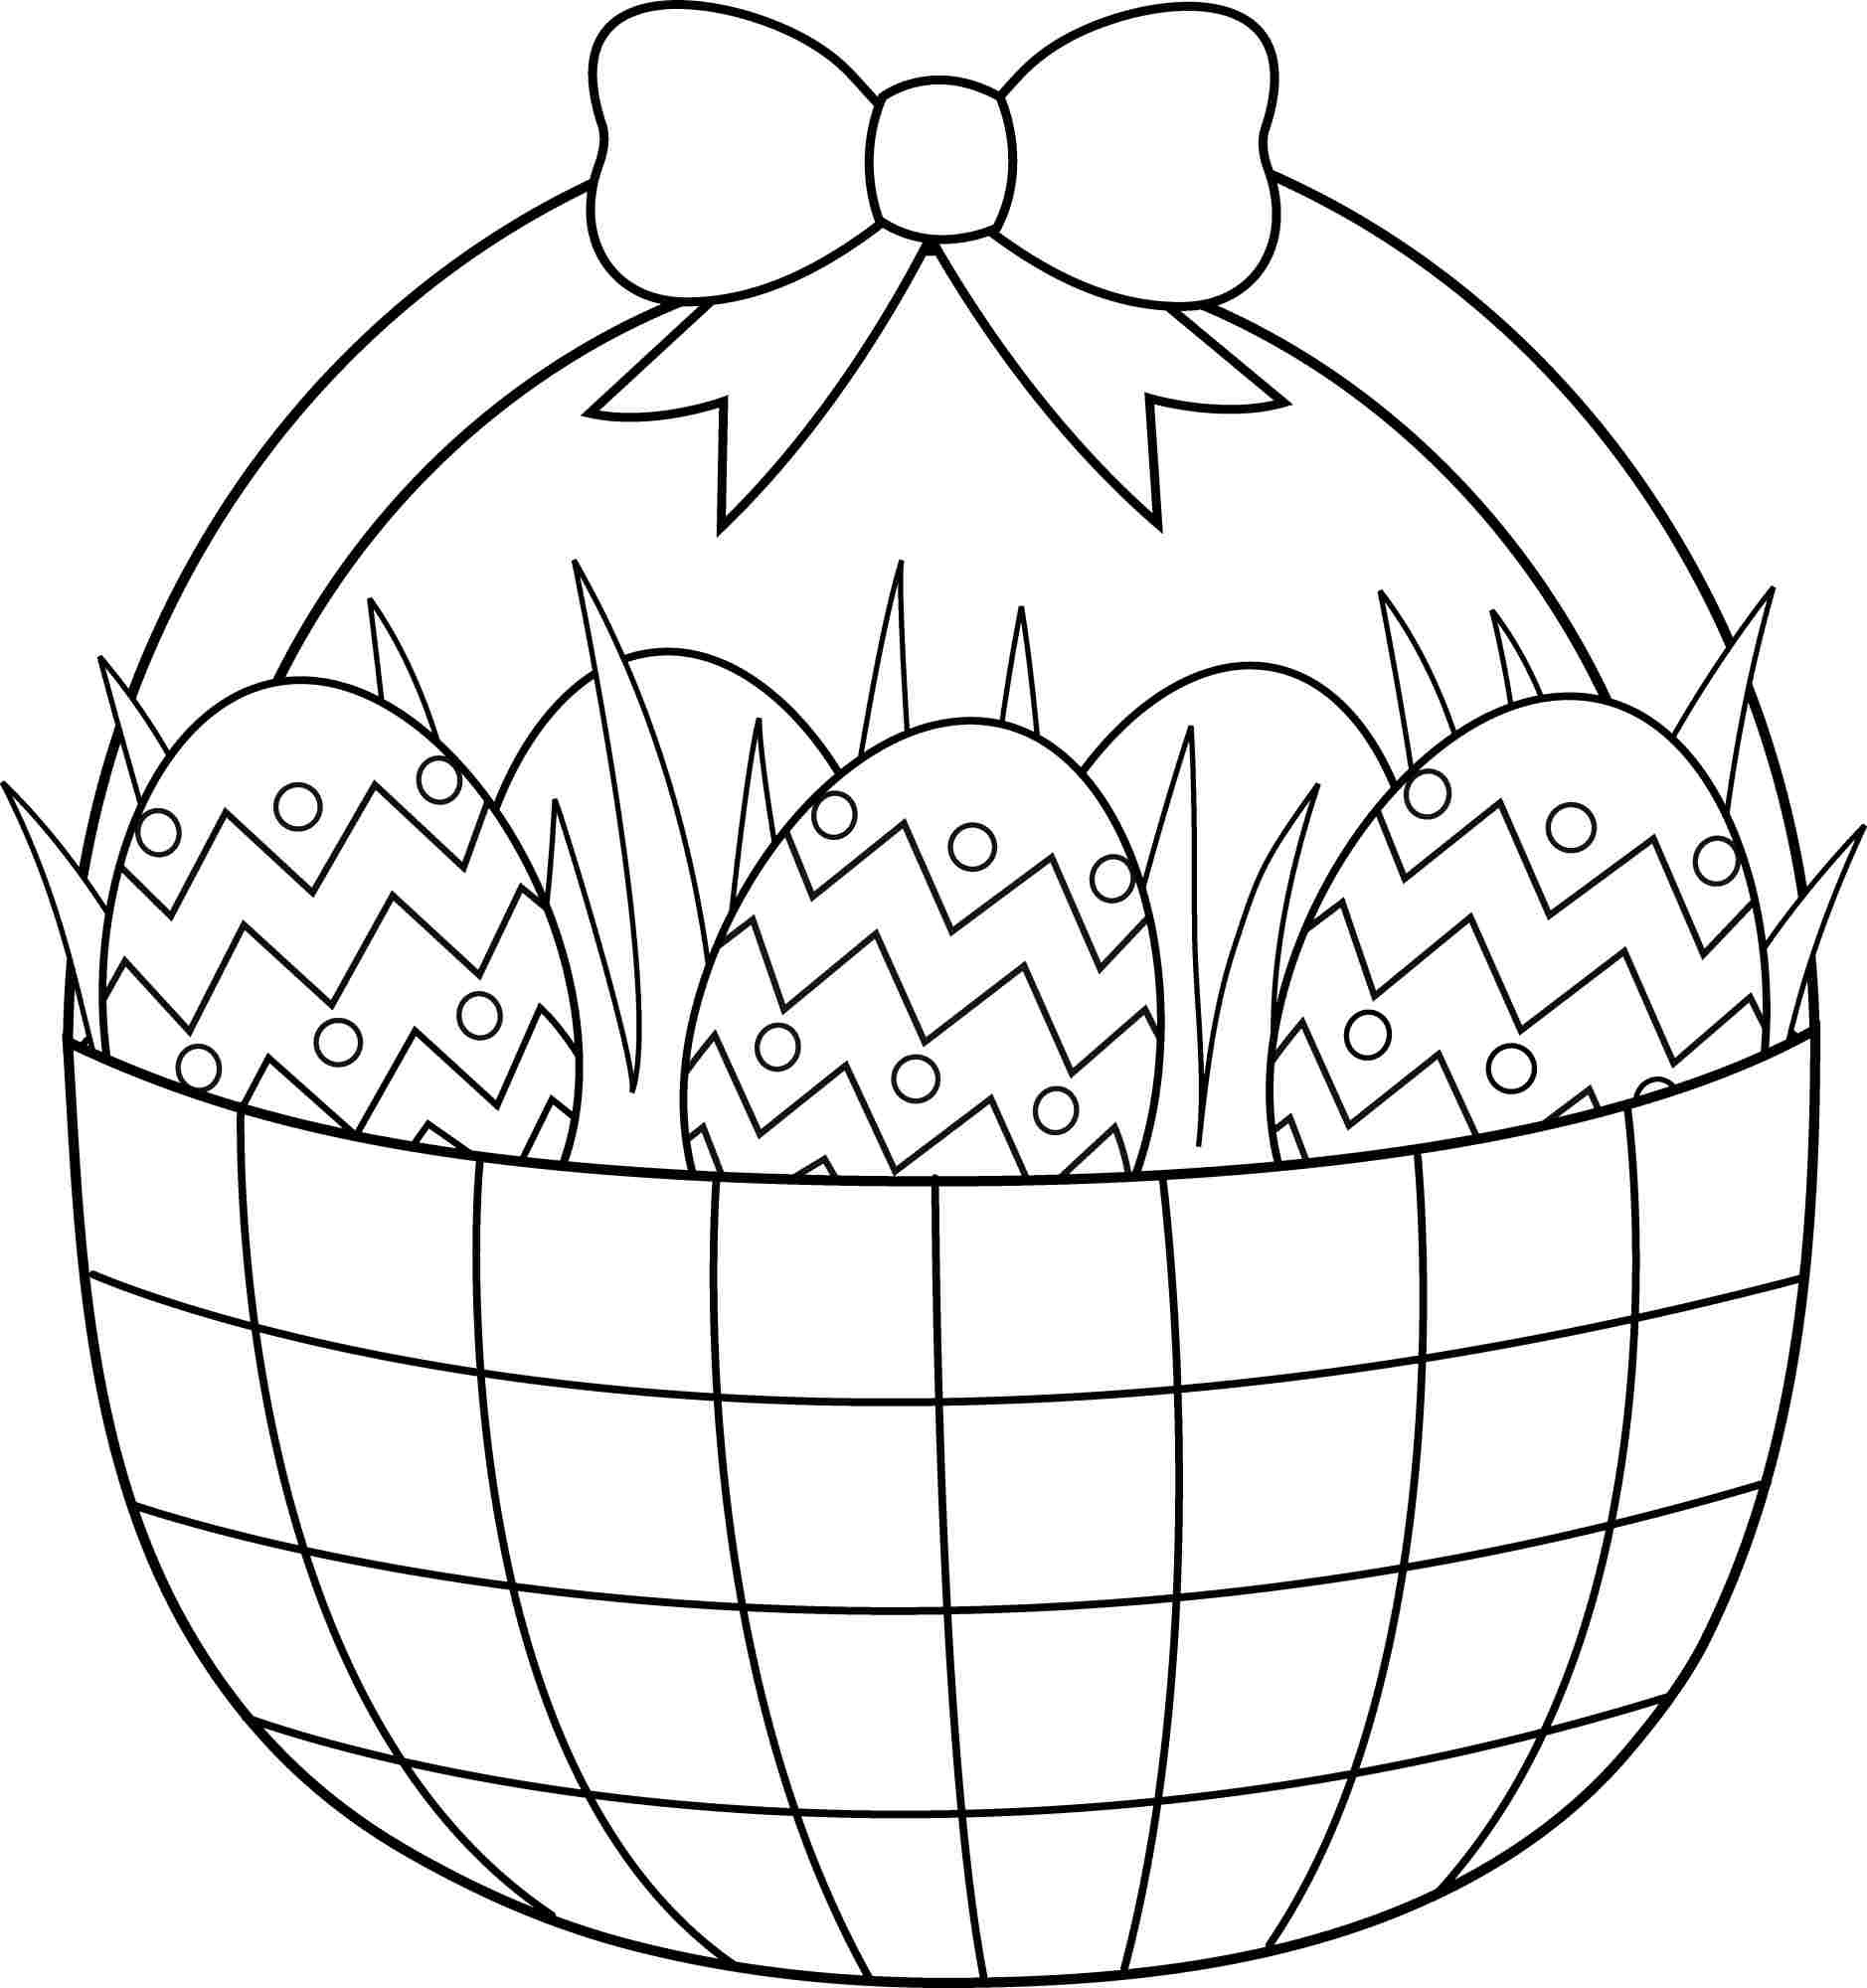 Printable Easter Coloring Pages Free Easter Coloring Pages Printable - Free Printable Easter Coloring Pages